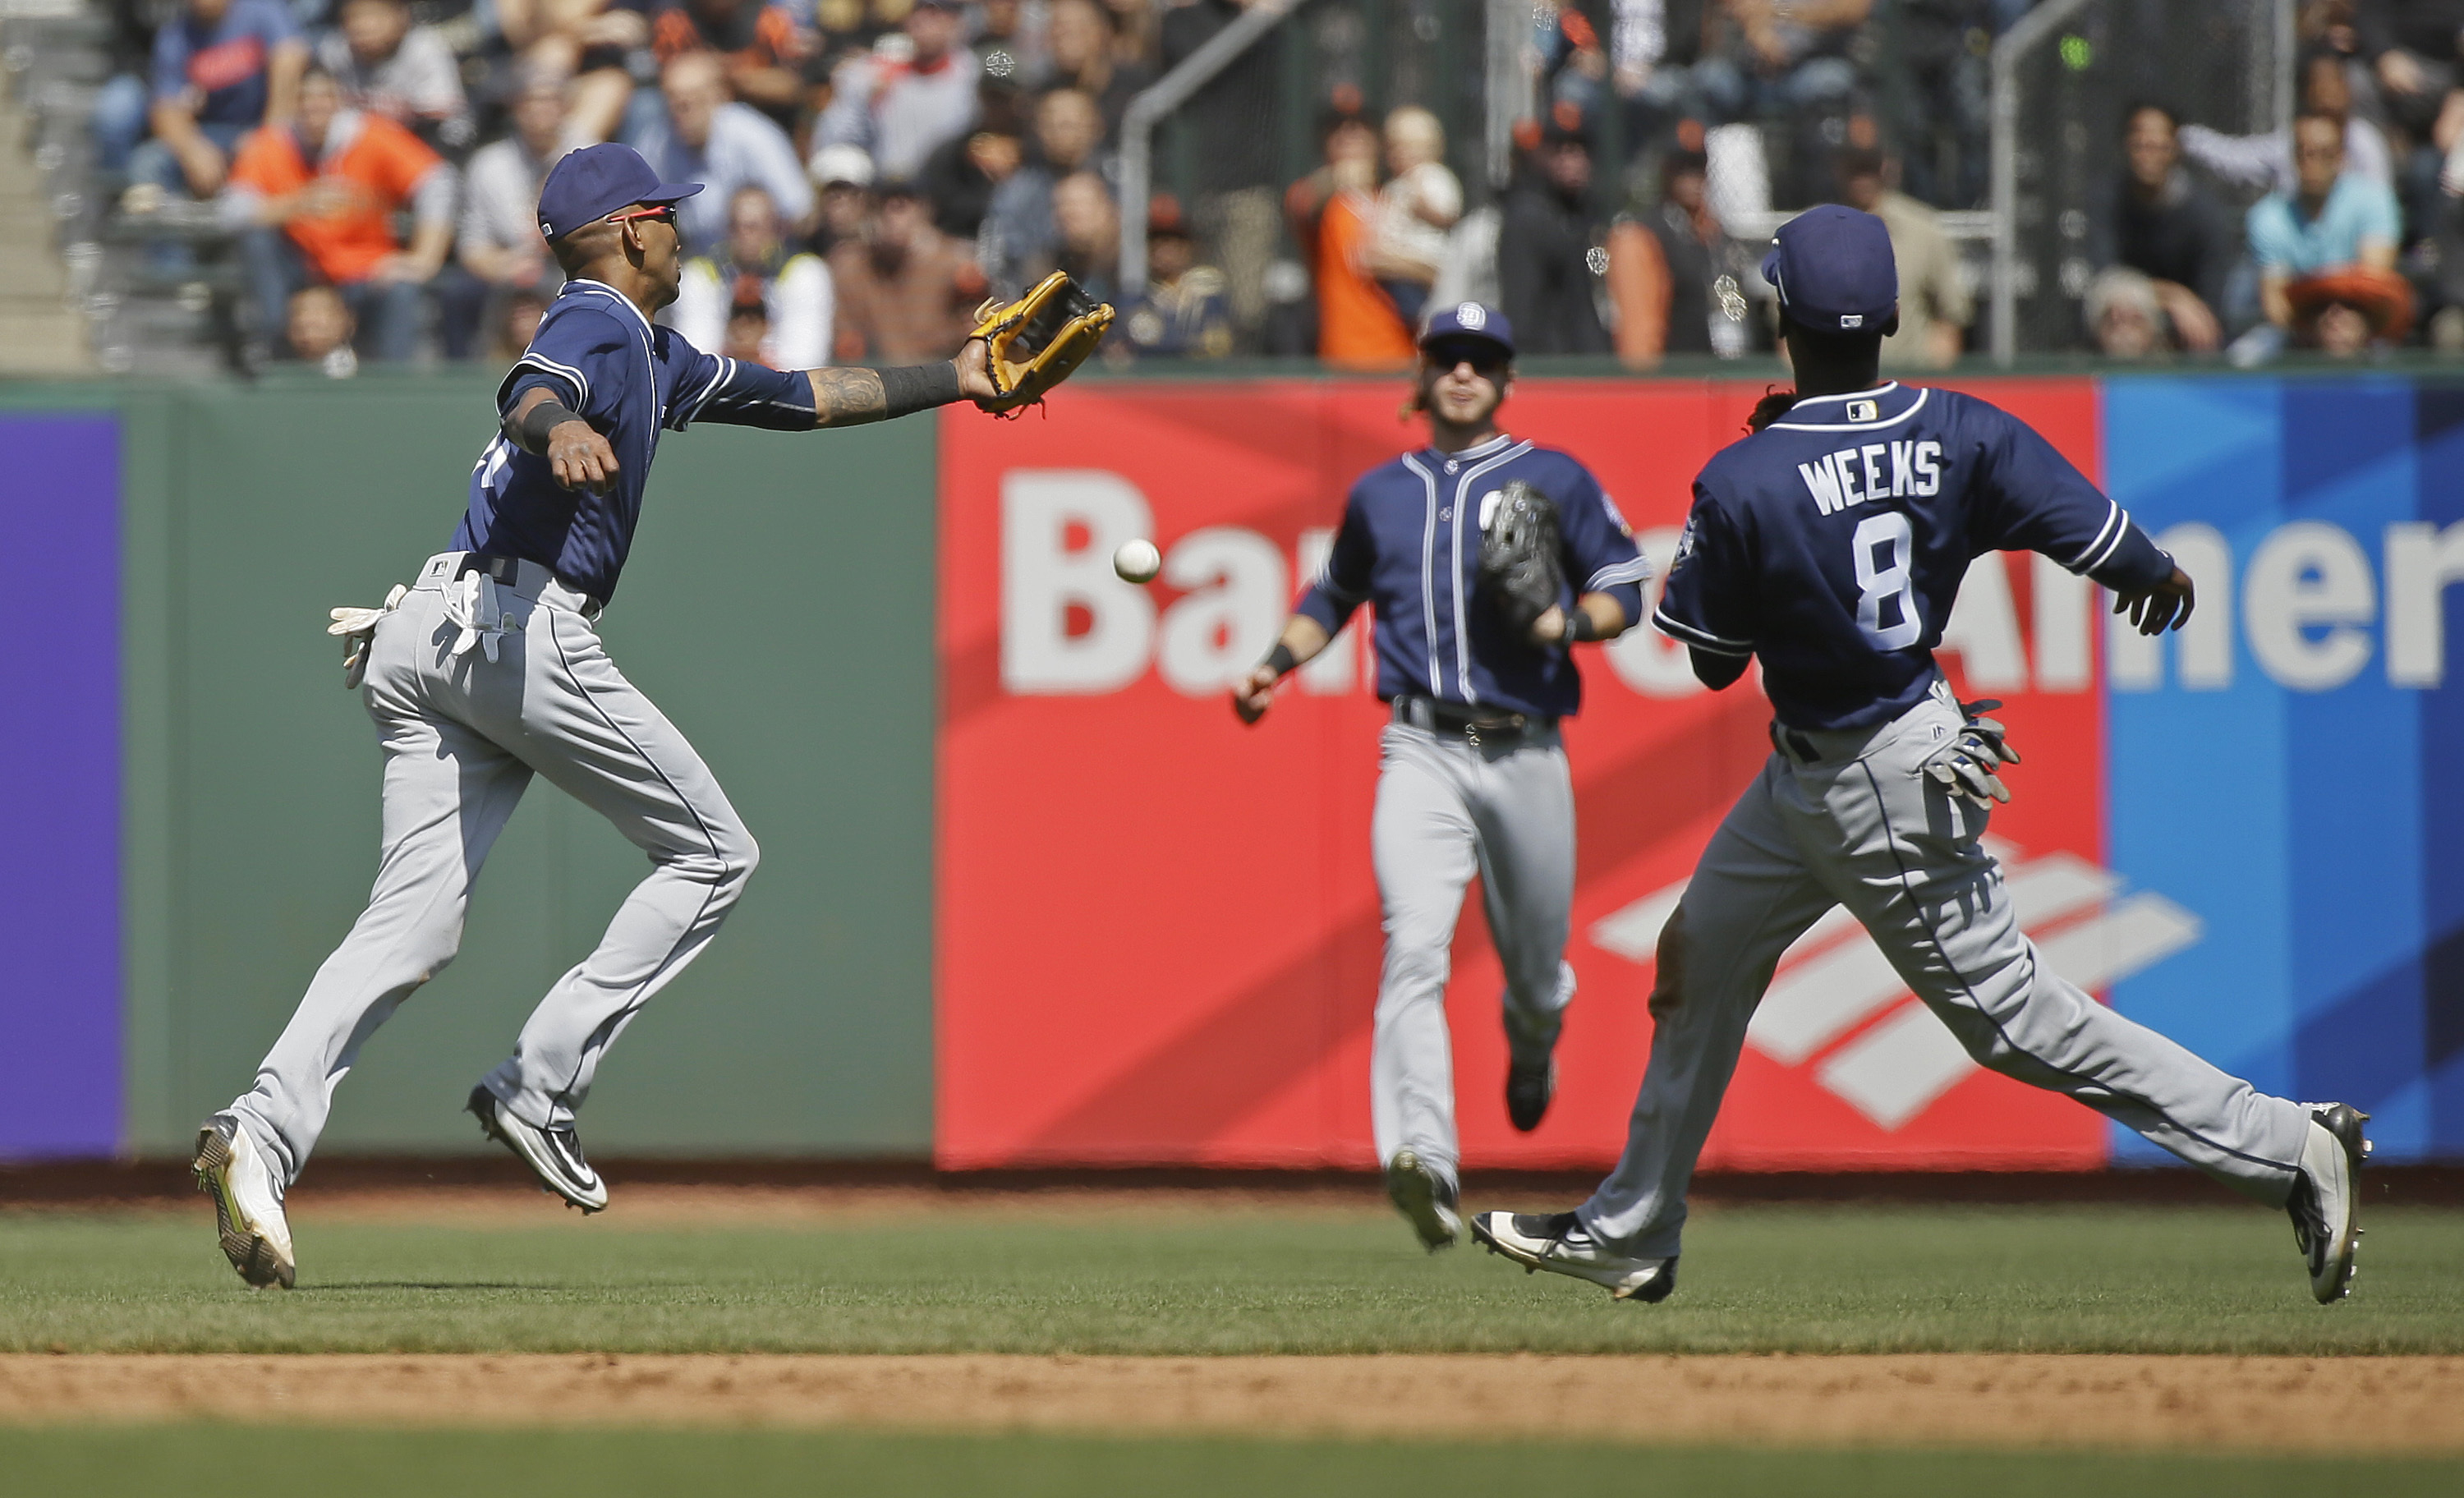 San Diego Padres' Alexei Ramirez misses a soft pop up hit by the San Francisco Giants' Gregor Blanco as second baseman Jemile Weeks (8) and center fielder Travis Jankowski look on in the sixth inning of their baseball game Wednesday, April 27, 2016, in Sa